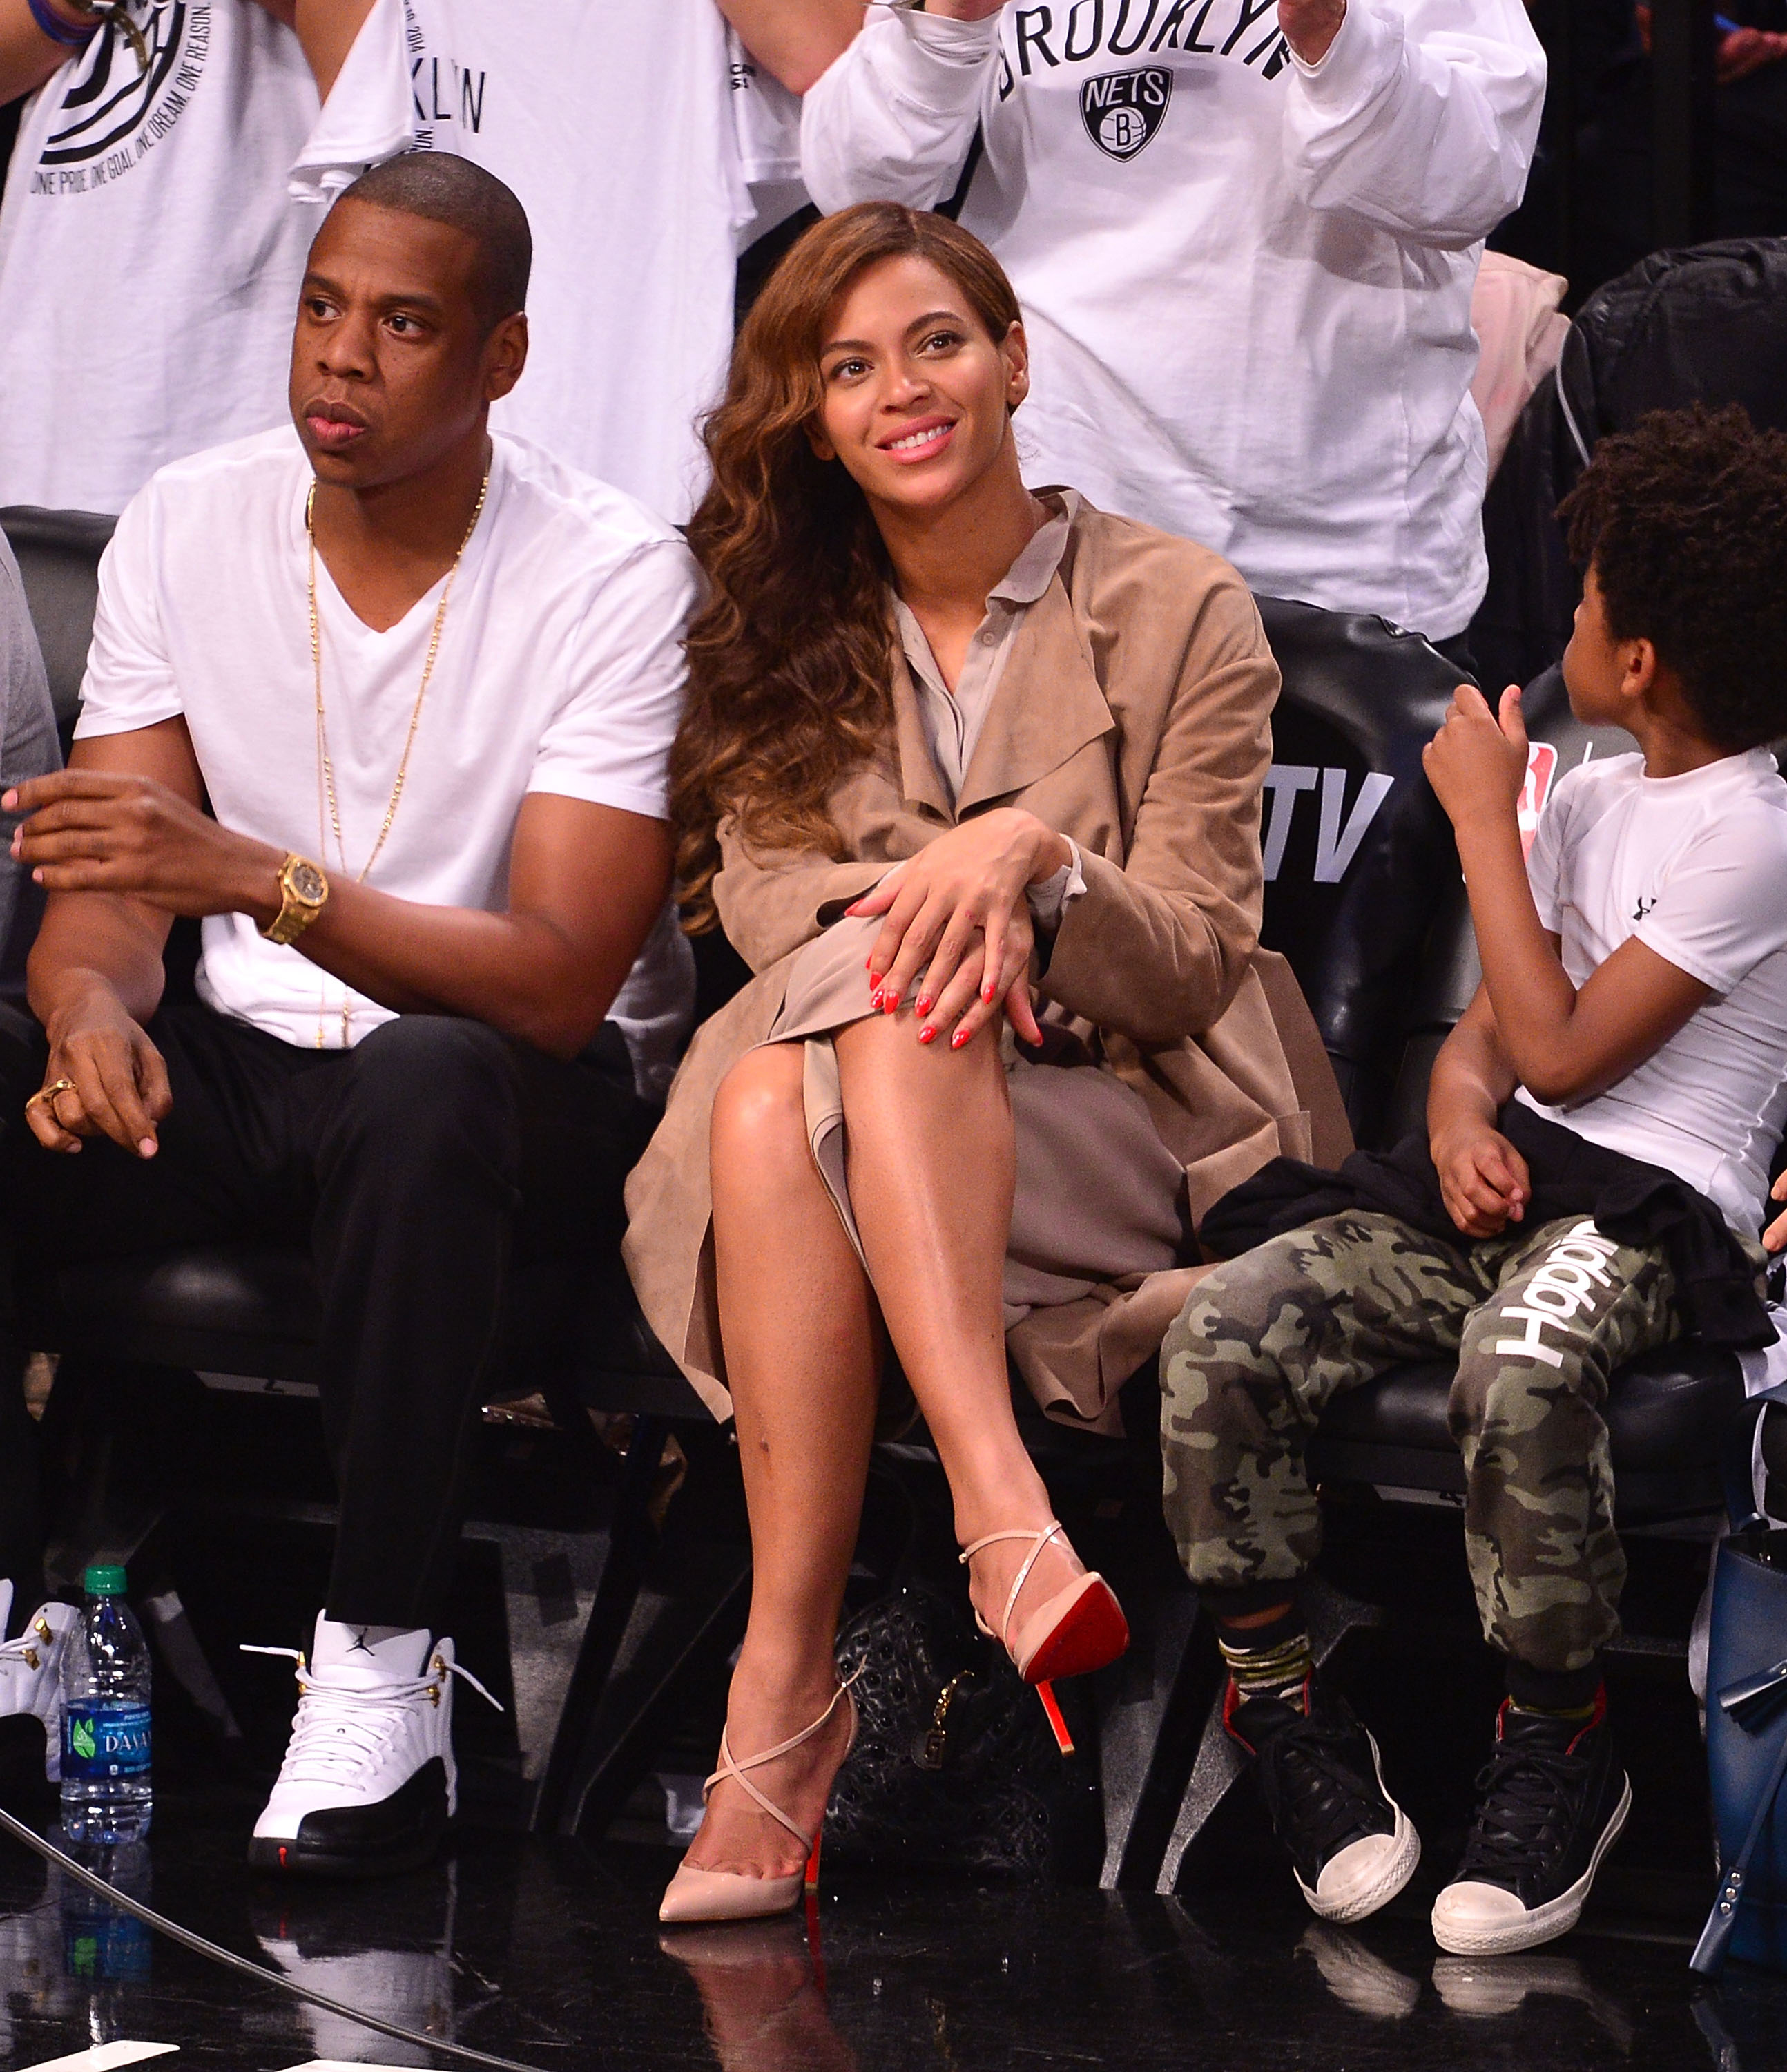 Celebrites Attend The Miami Heat Vs Brooklyn Nets Game - May 10, 2014